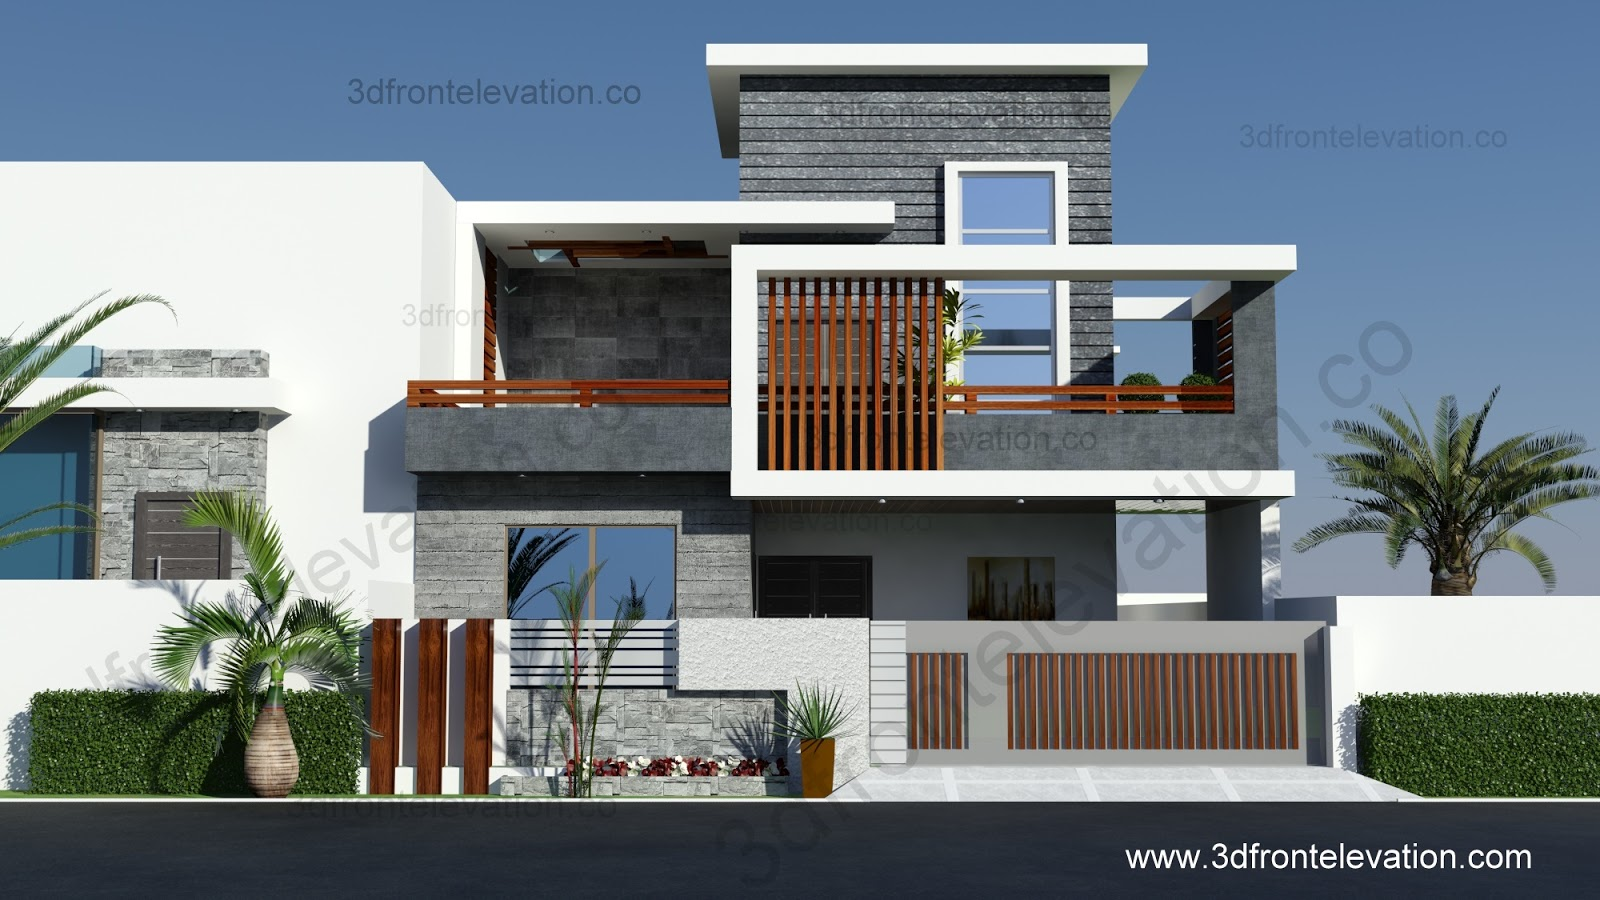 10 marla house plan for Home designs 3d images